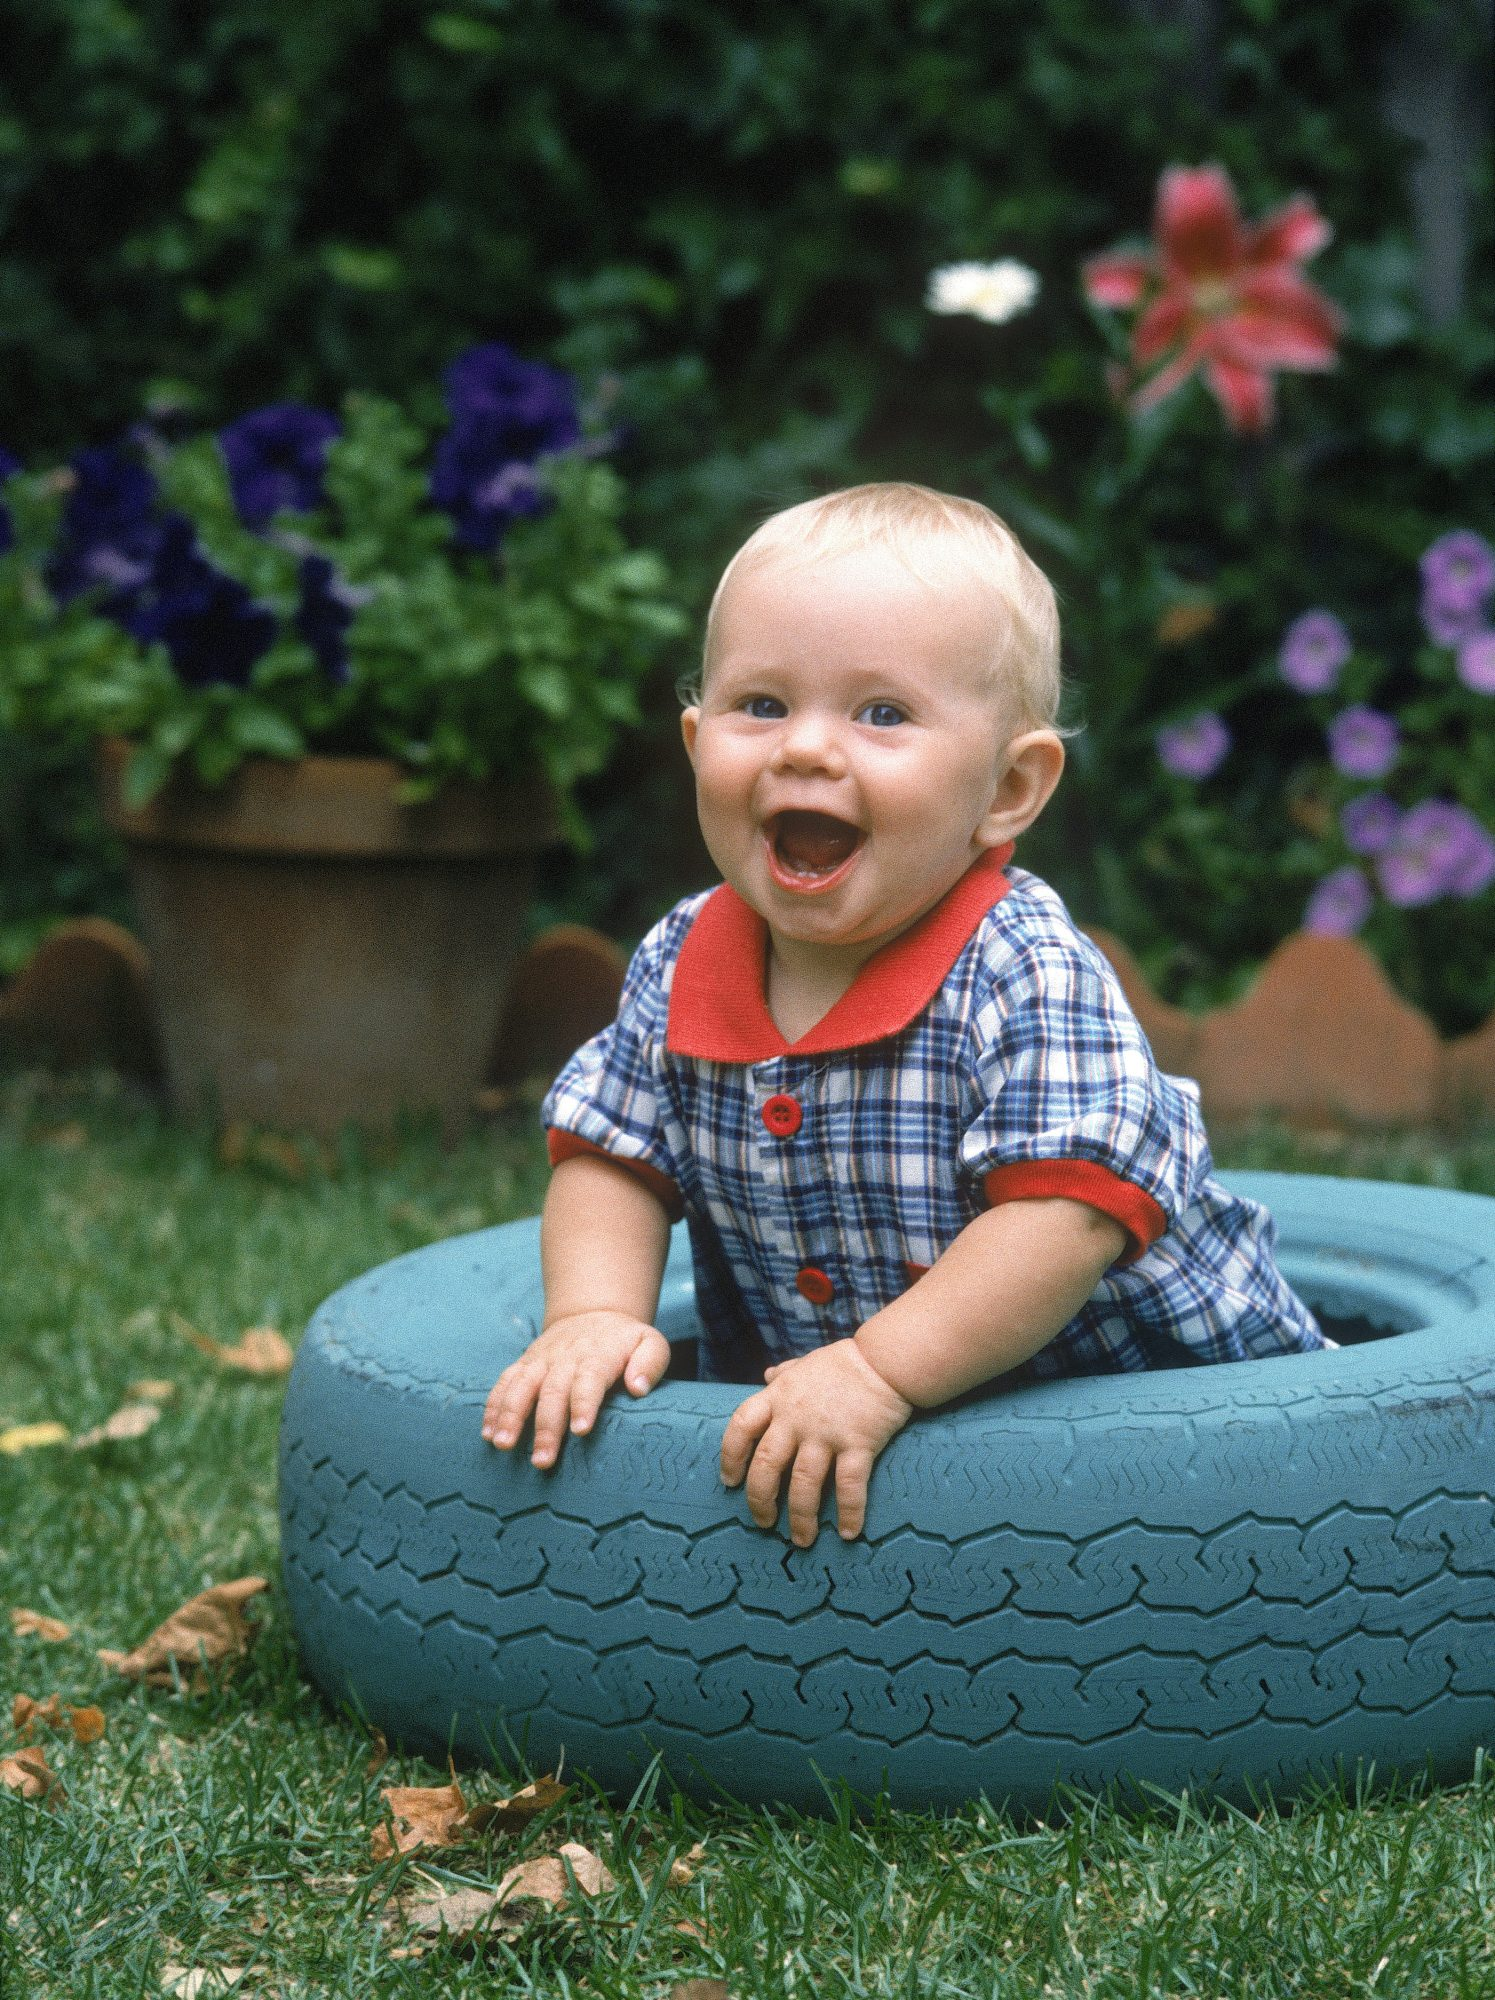 Toddler Laughing in a Tire